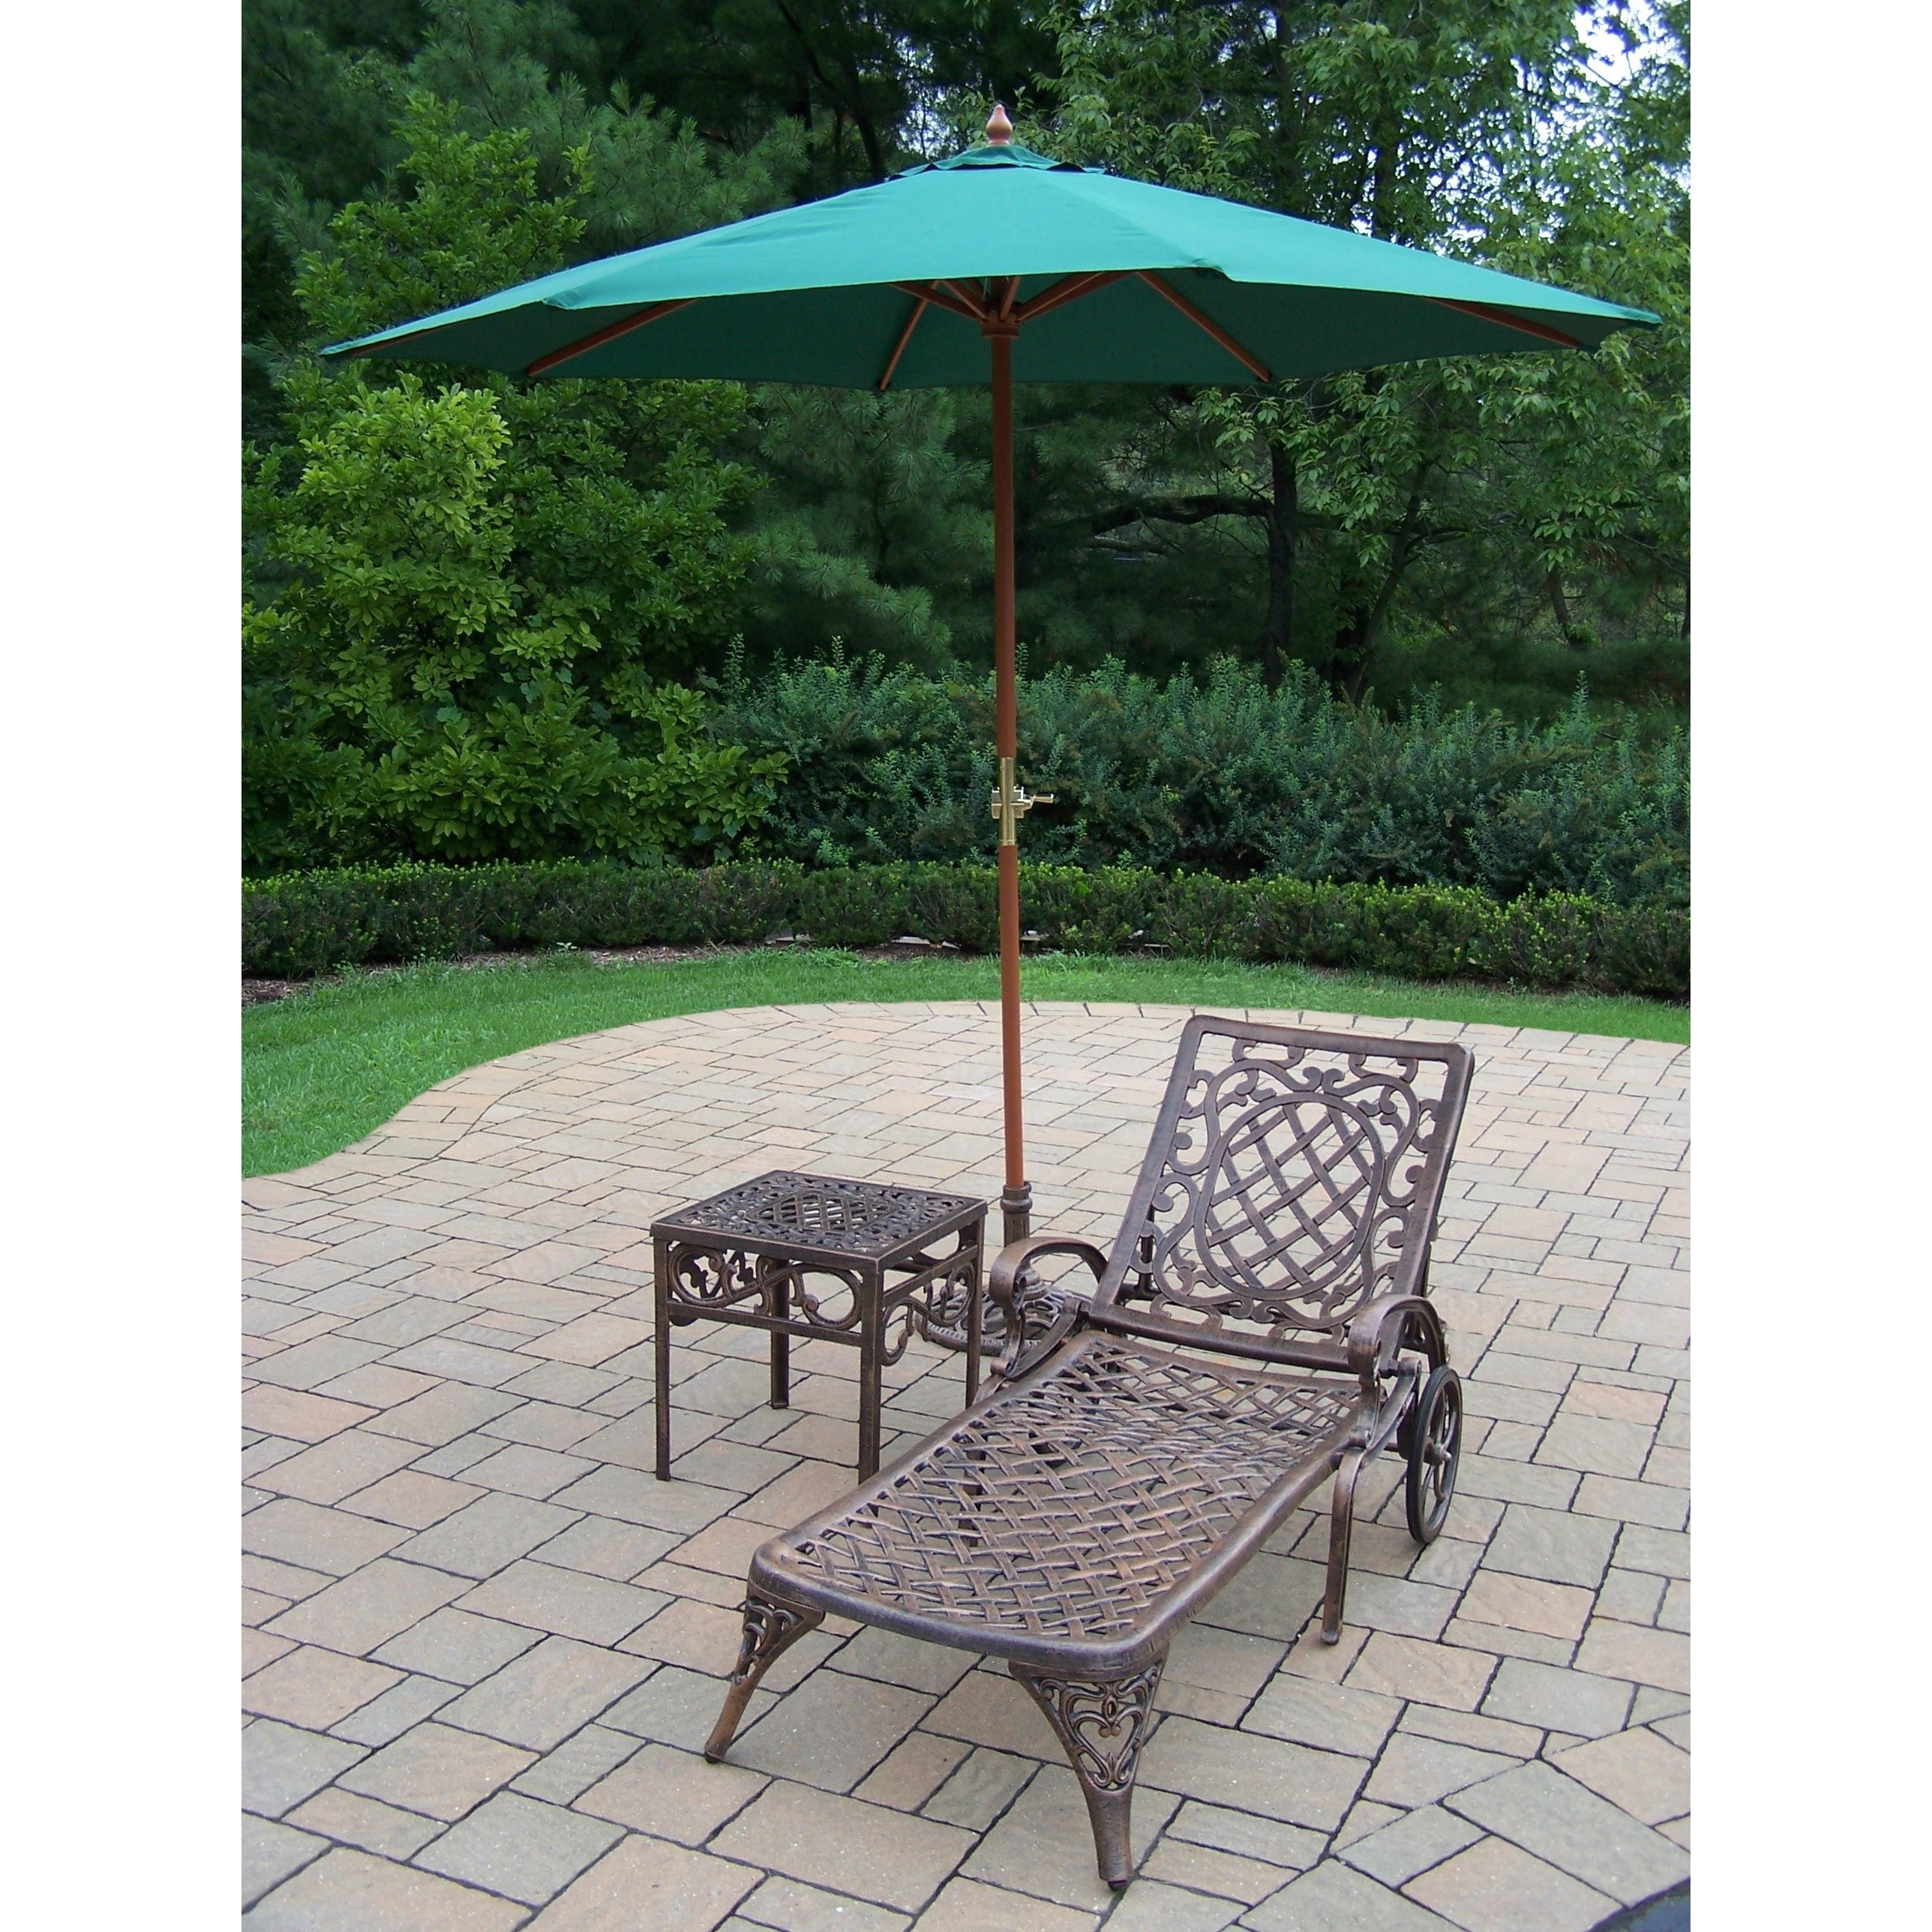 dakota cast aluminum lounge set with umbrella free shipping wheeled chaise square side table and green wooden stand outdoor today wicker furniture jcpenney patio chairs for small